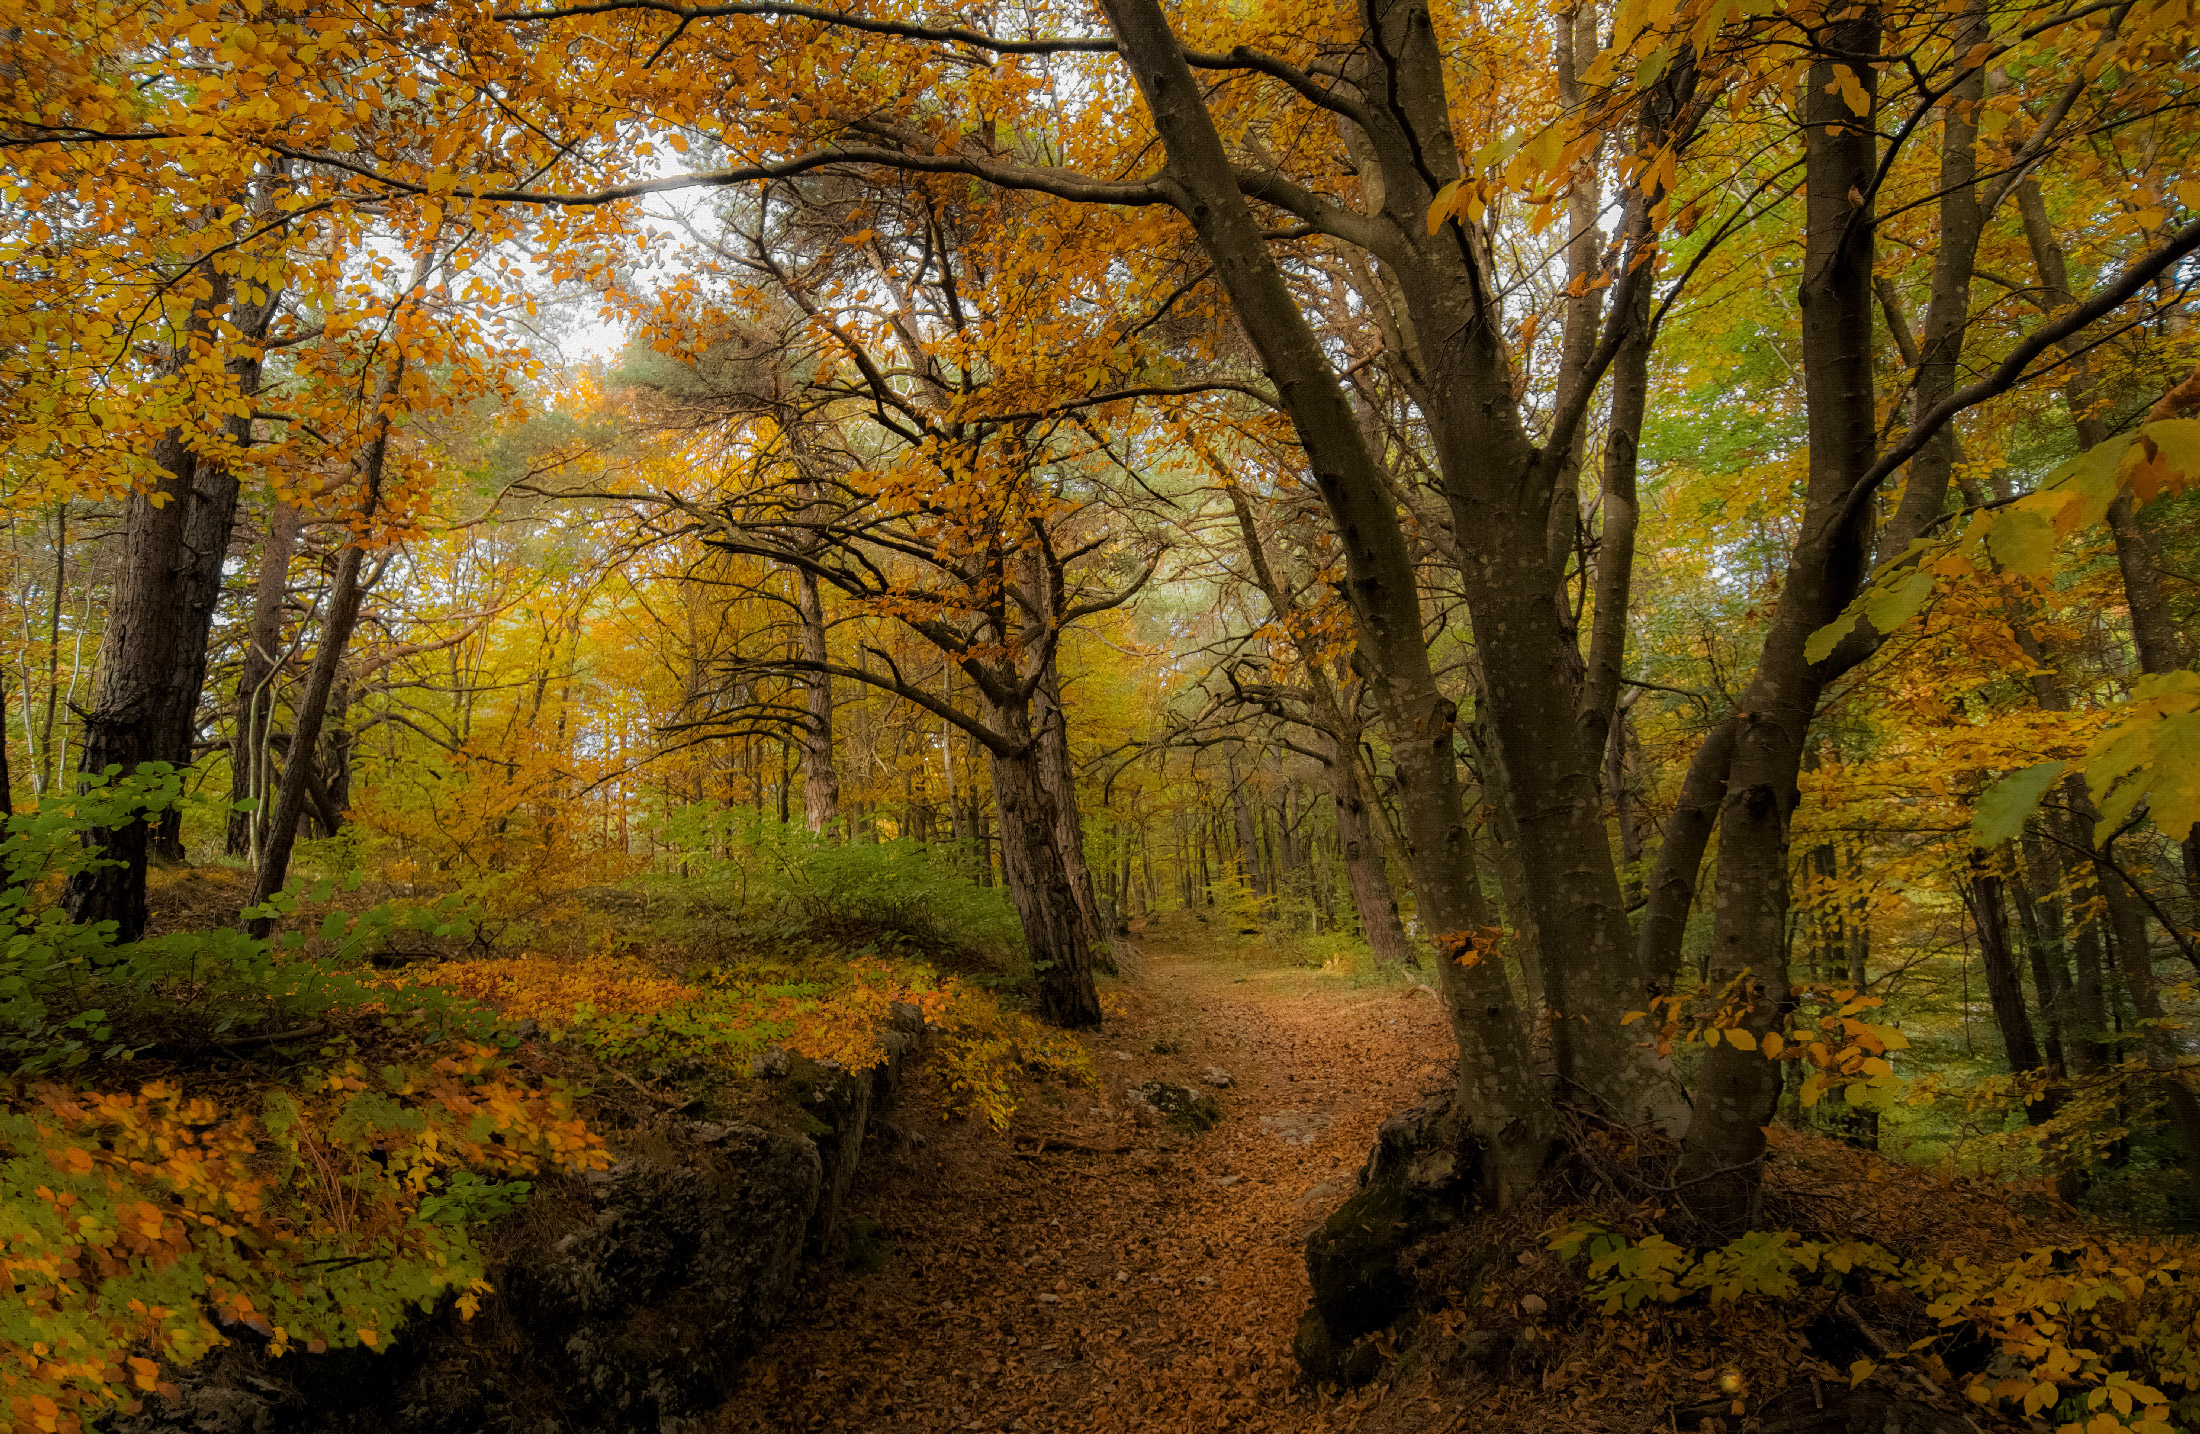 Take it easy.... the forest rests...